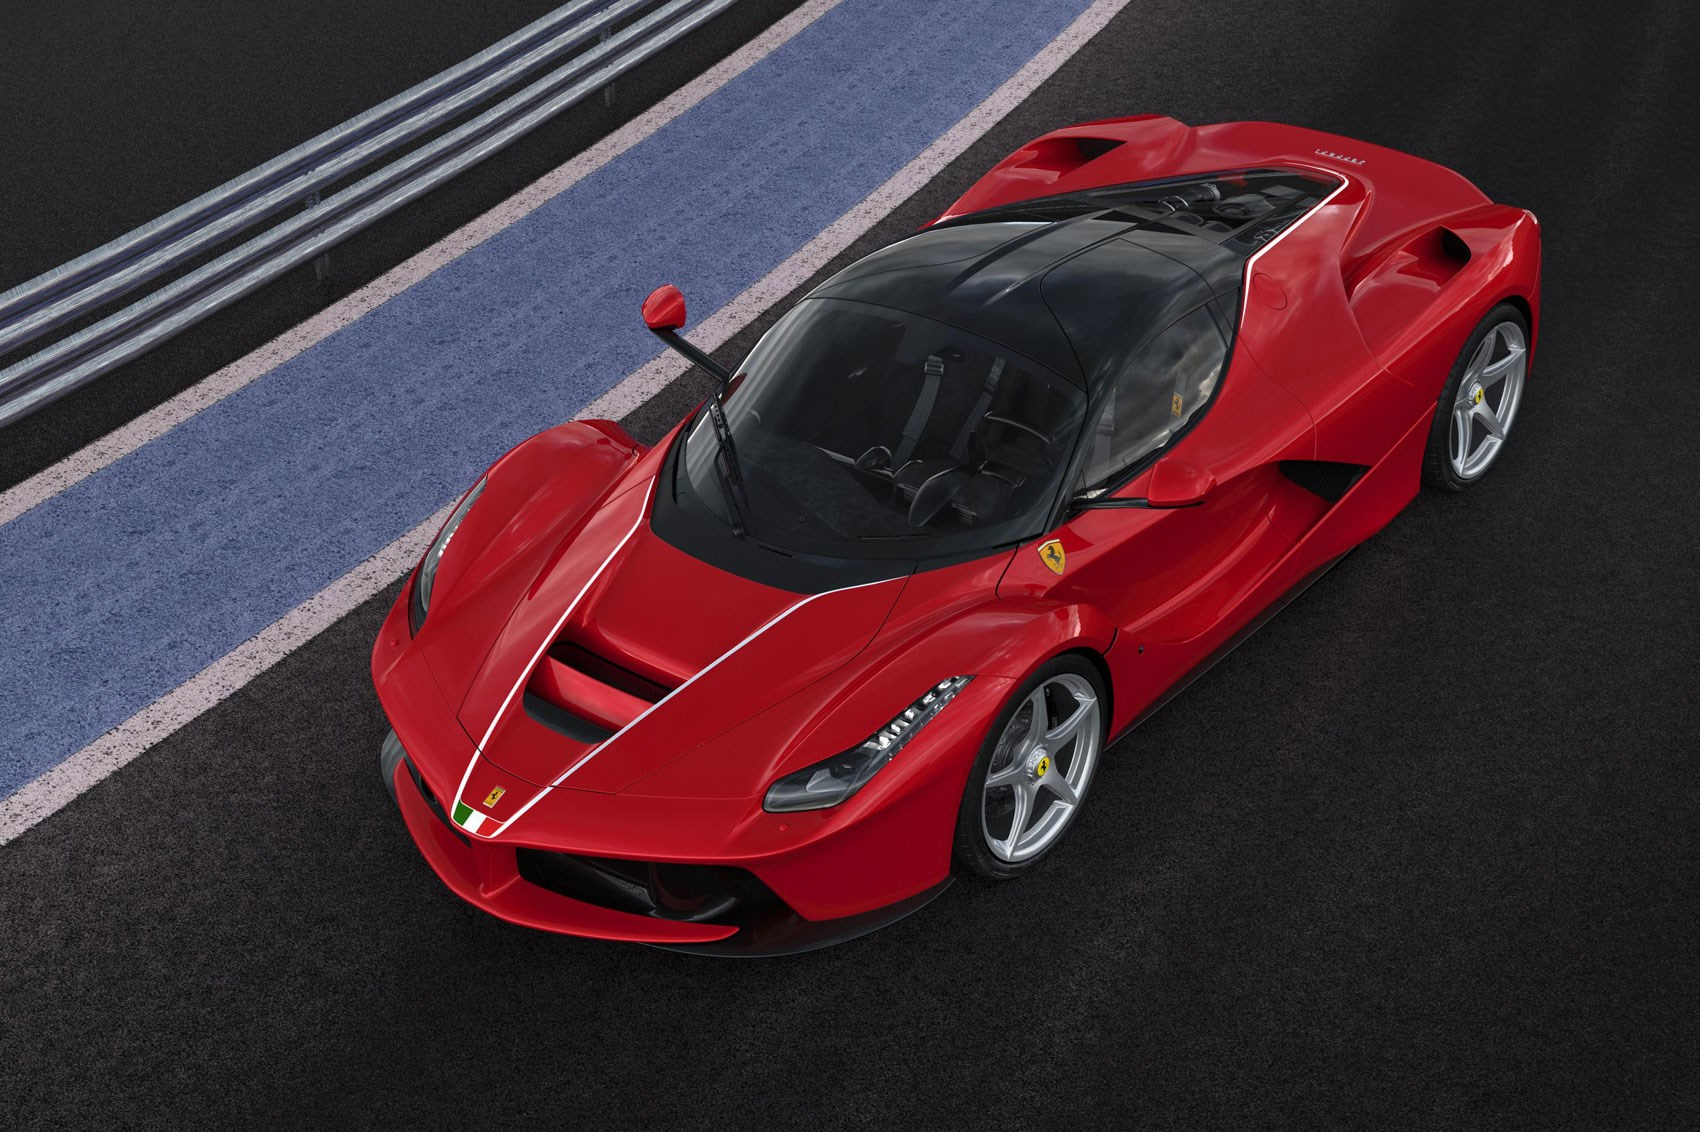 ferrari bust the police california drive s trying pull dads news to bueller ferris insurance his with son dad a